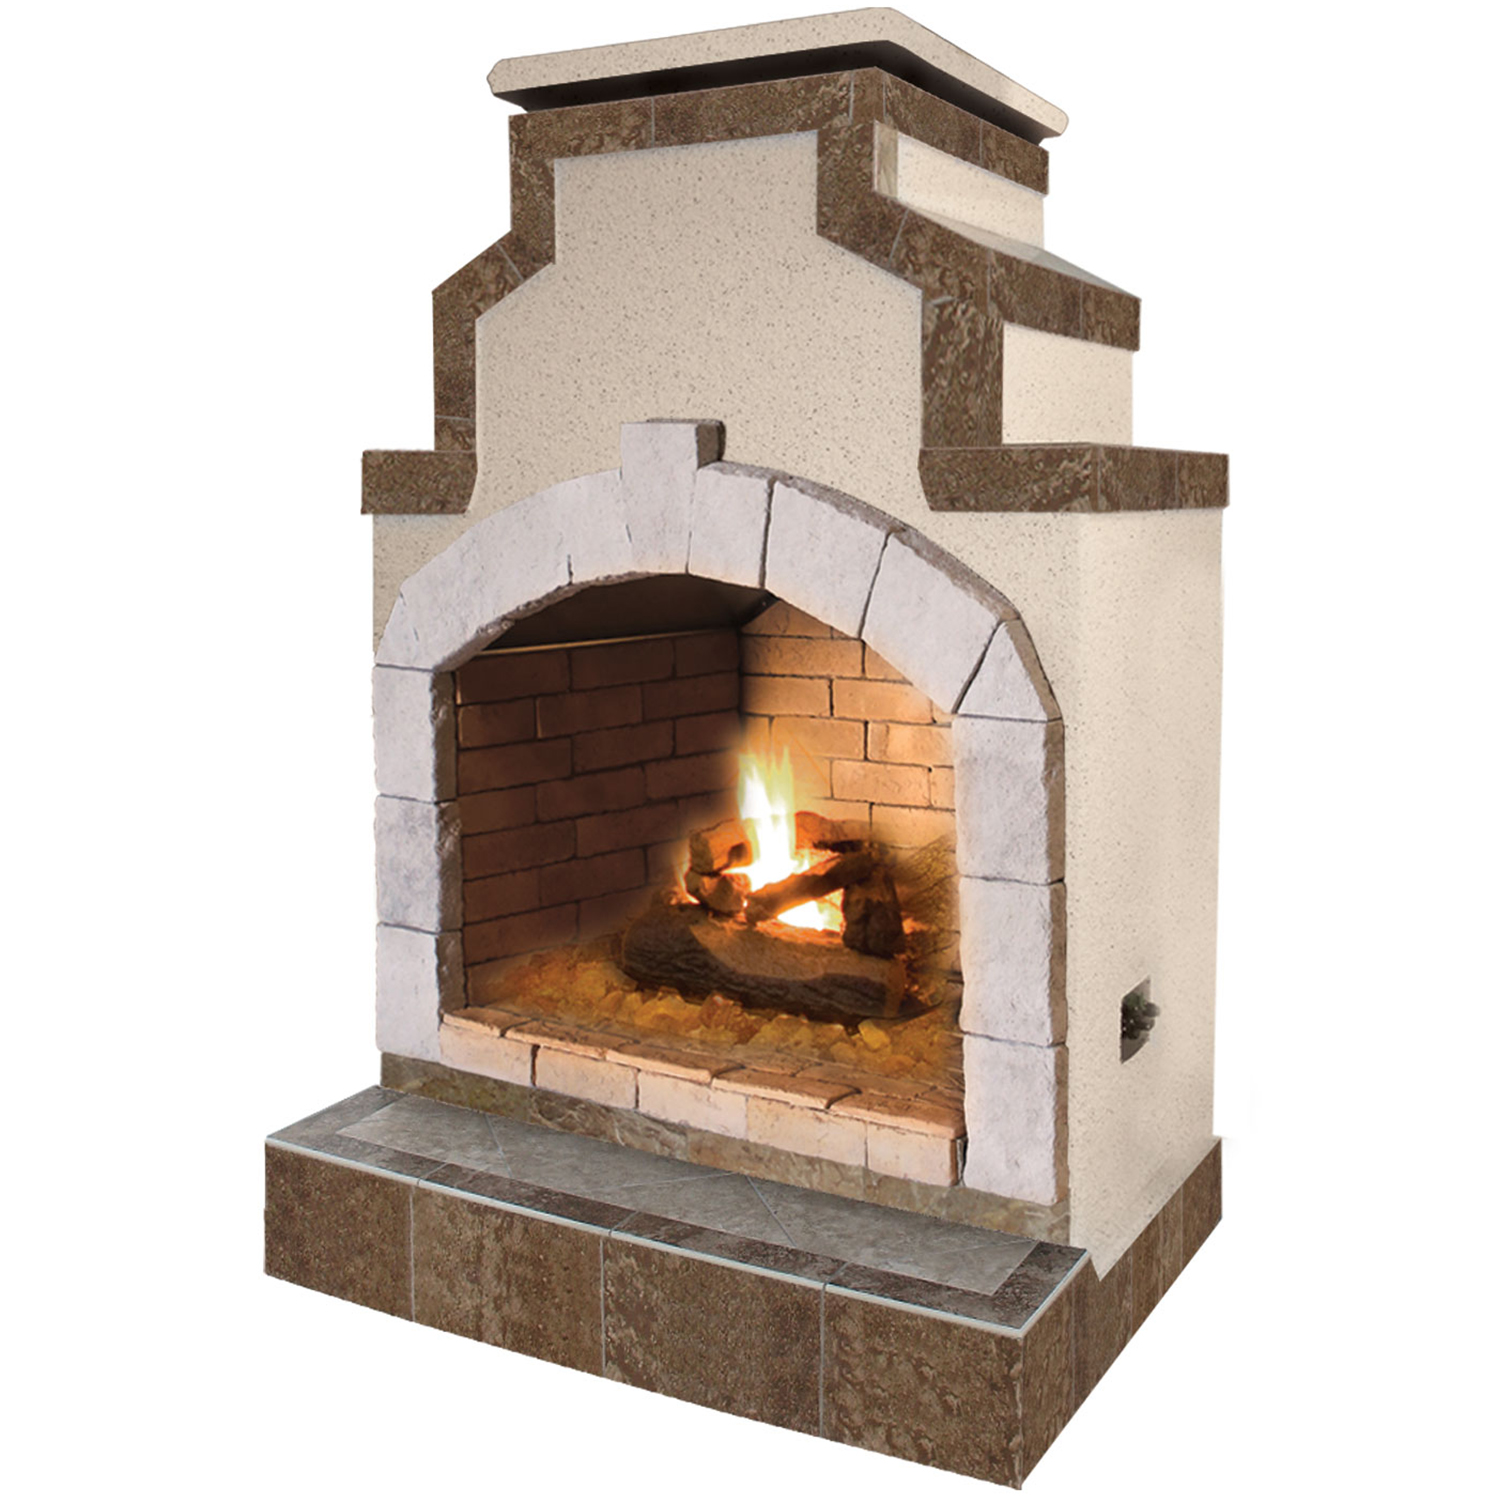 48 in. Propane Gas Outdoor Fireplace in Porcelain Tile by Lloyds Material Supply